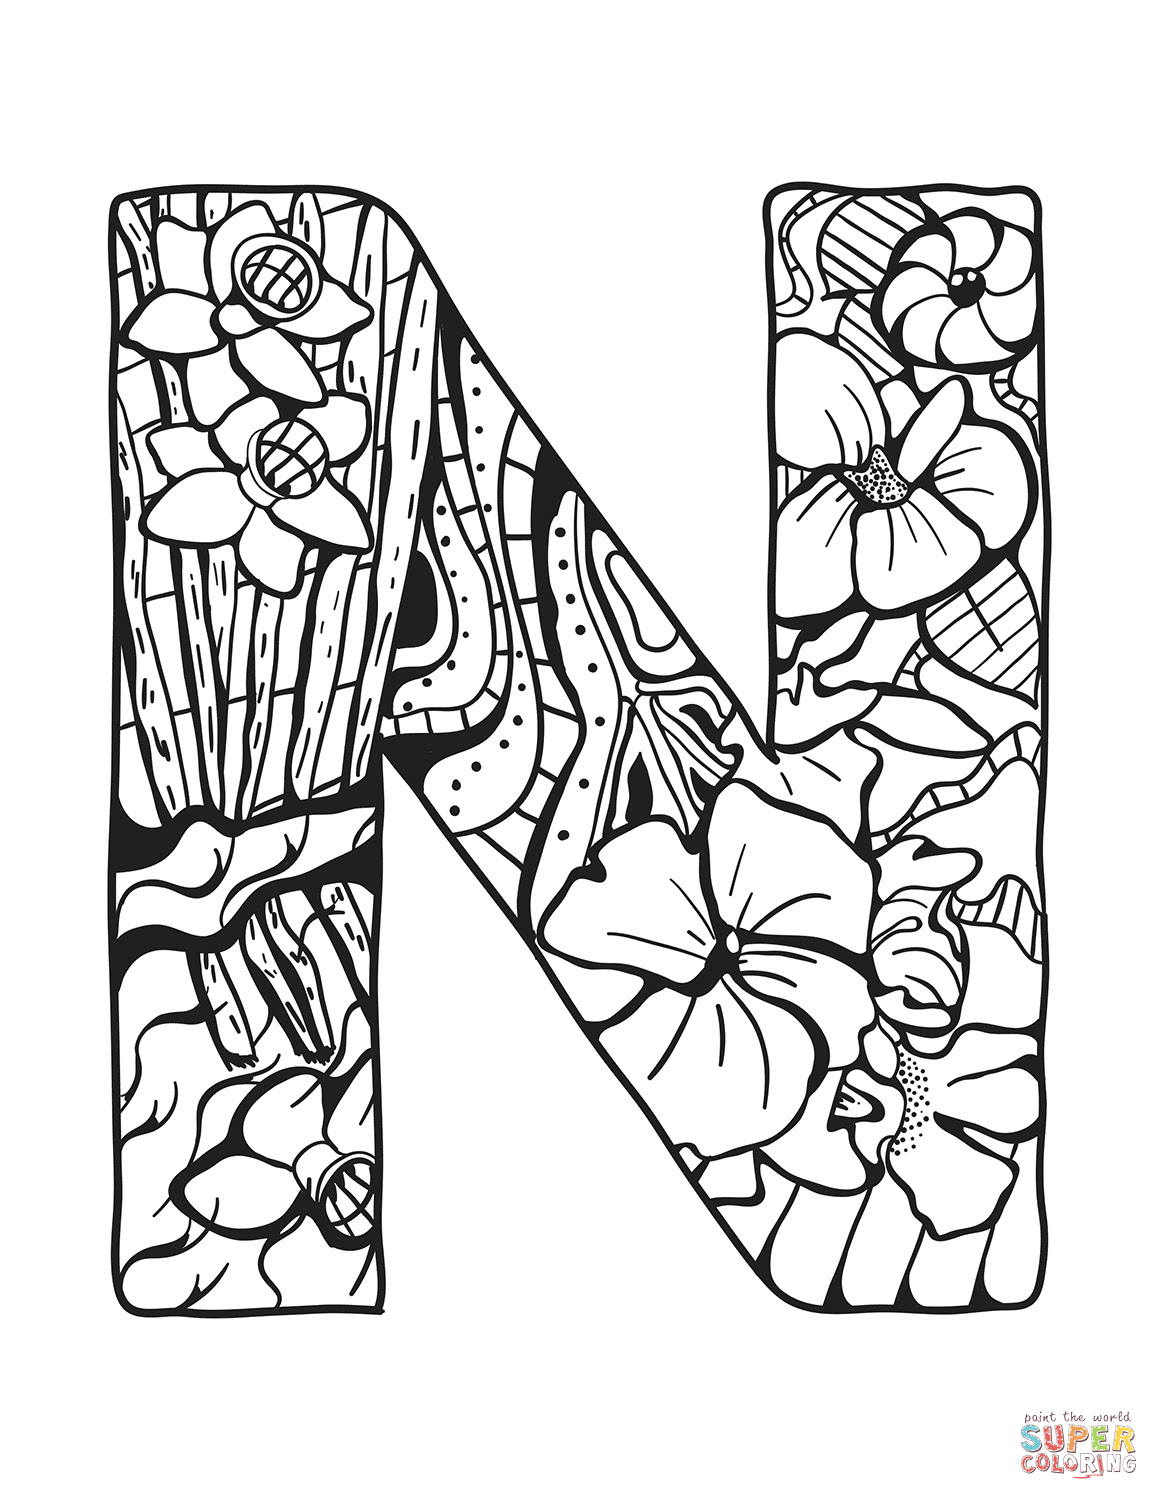 610 Coloring Pages In Letters Images & Pictures In HD